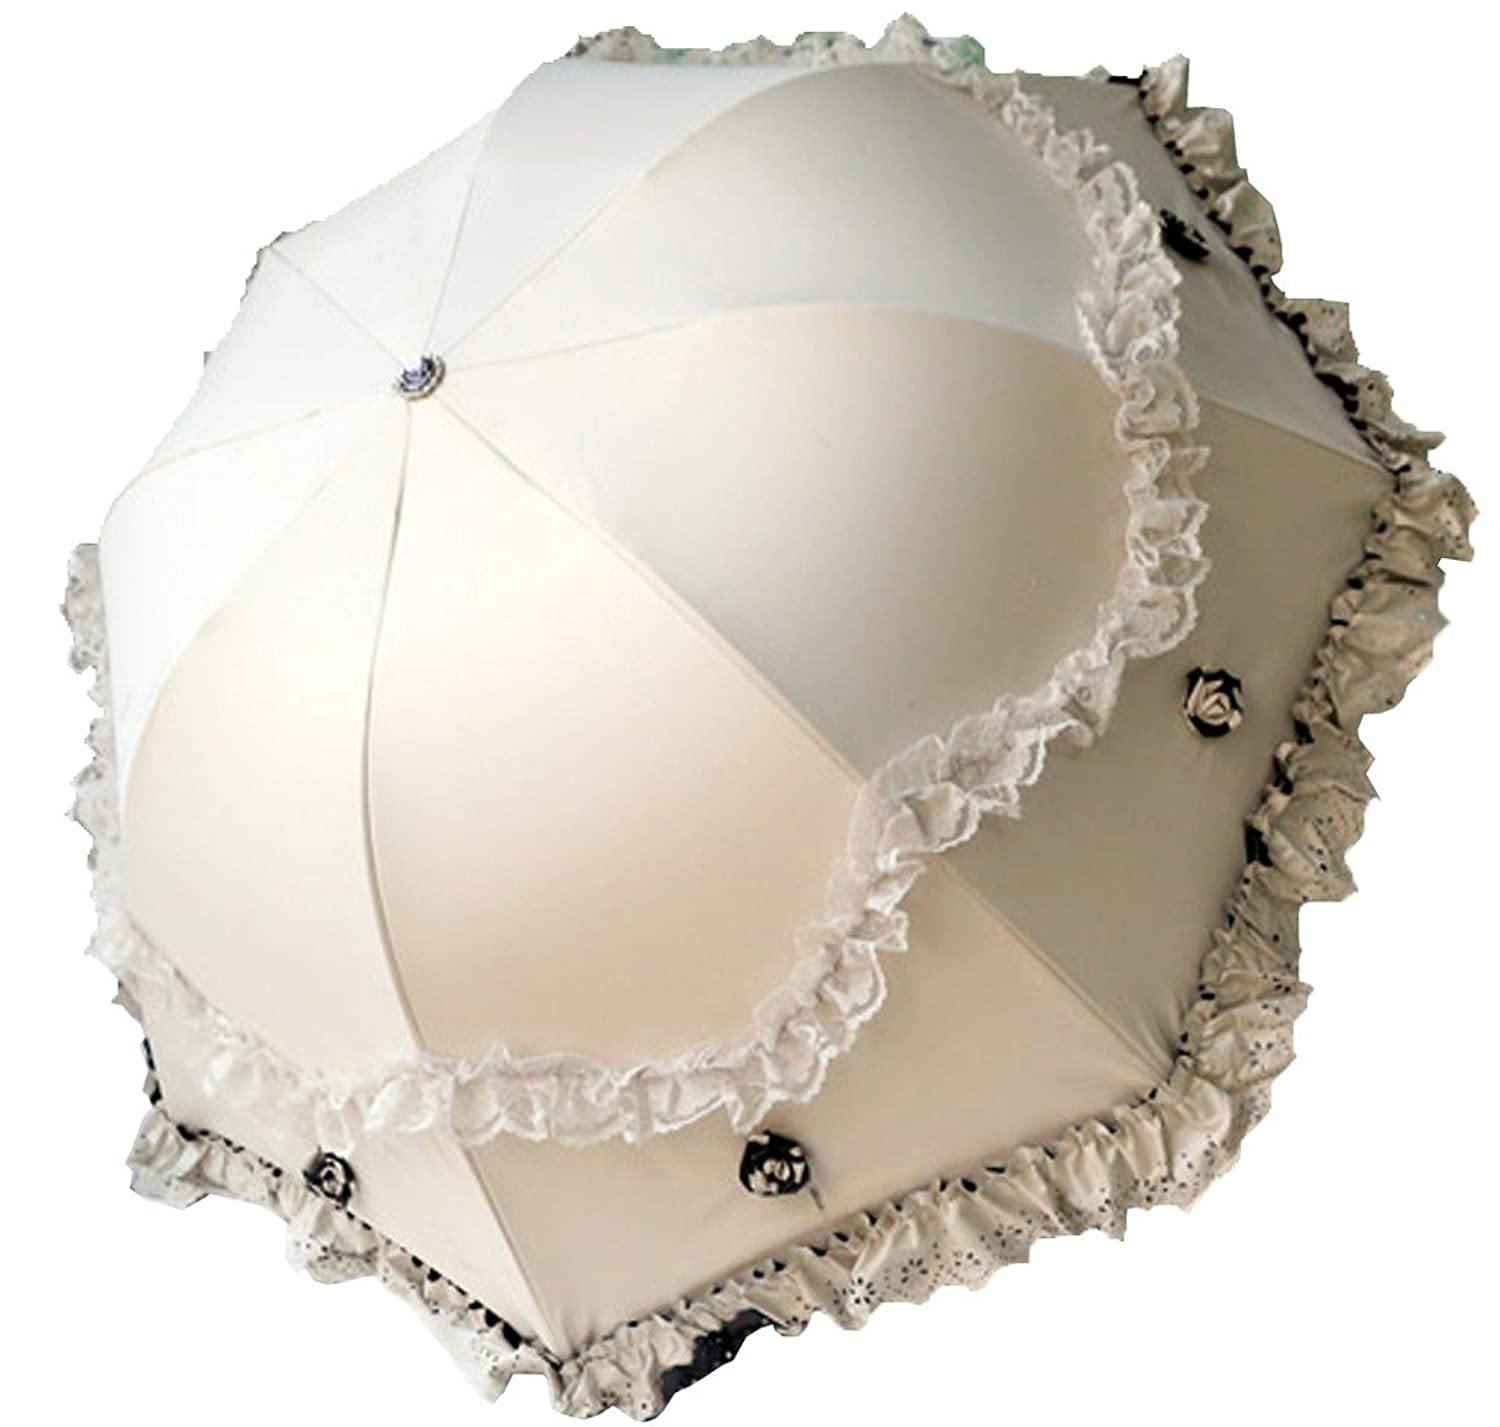 Vintage Inspired Wedding Accessories Supergirl Women Parasol Travel Compact Lace Sunshade Anti-UV Windproof Rain Umbrella $28.99 AT vintagedancer.com